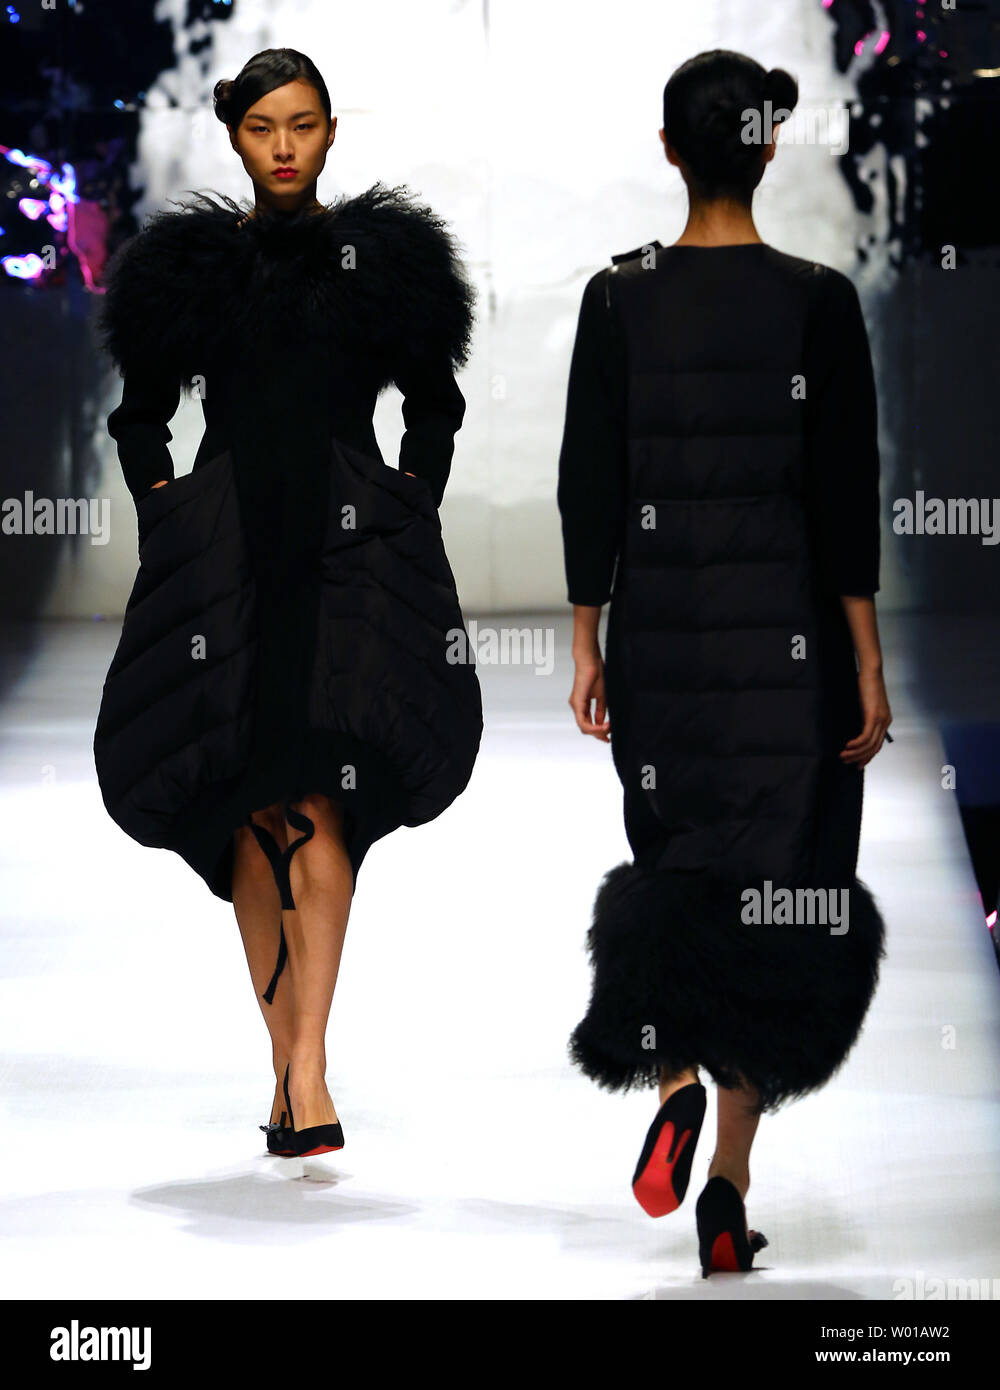 Models Showcase Fashion Designs By Zoual Yanti During China S Fashion Week In Beijing On March 31